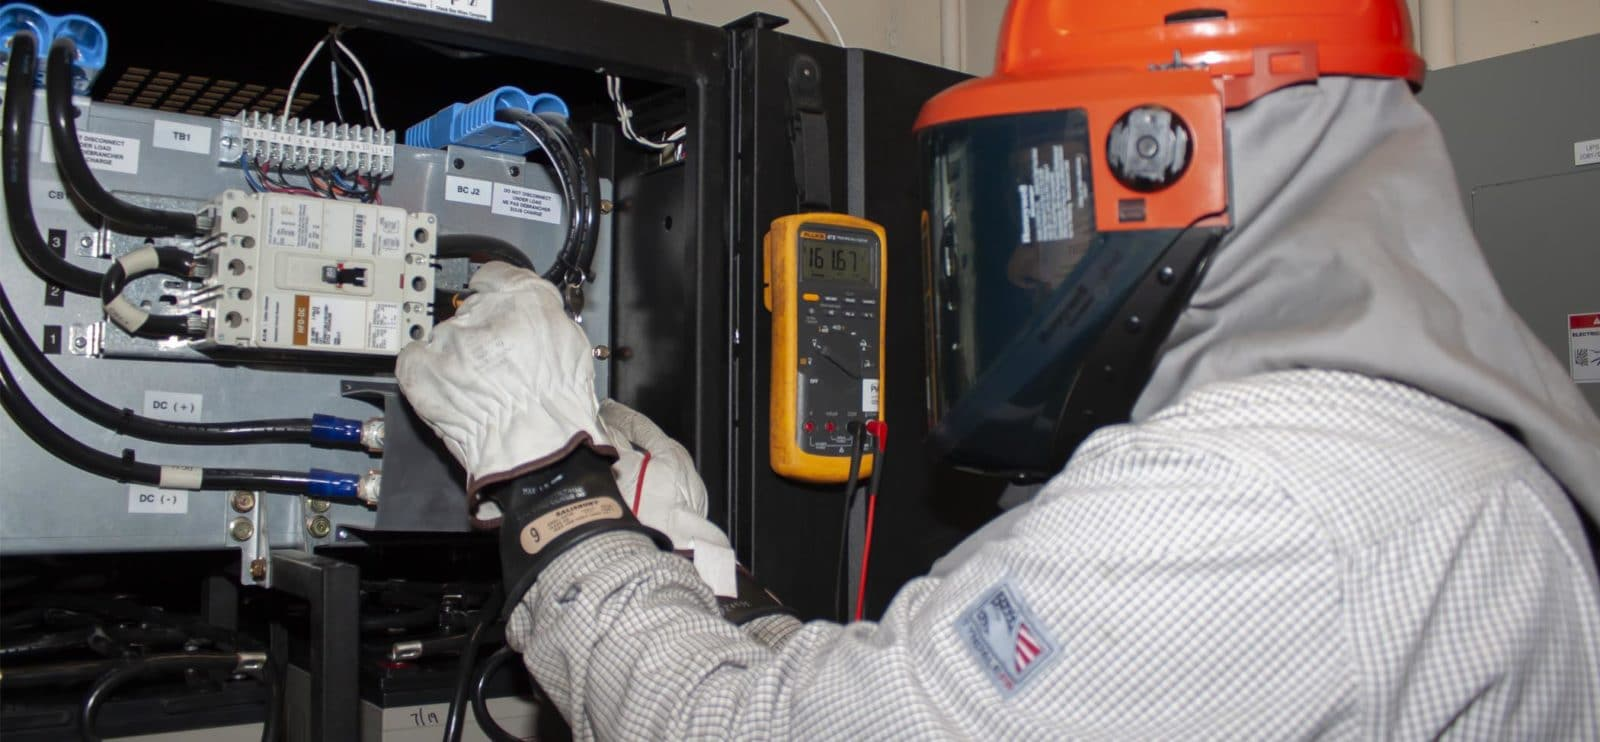 Standby Power System Consultants Datacenter Service Image